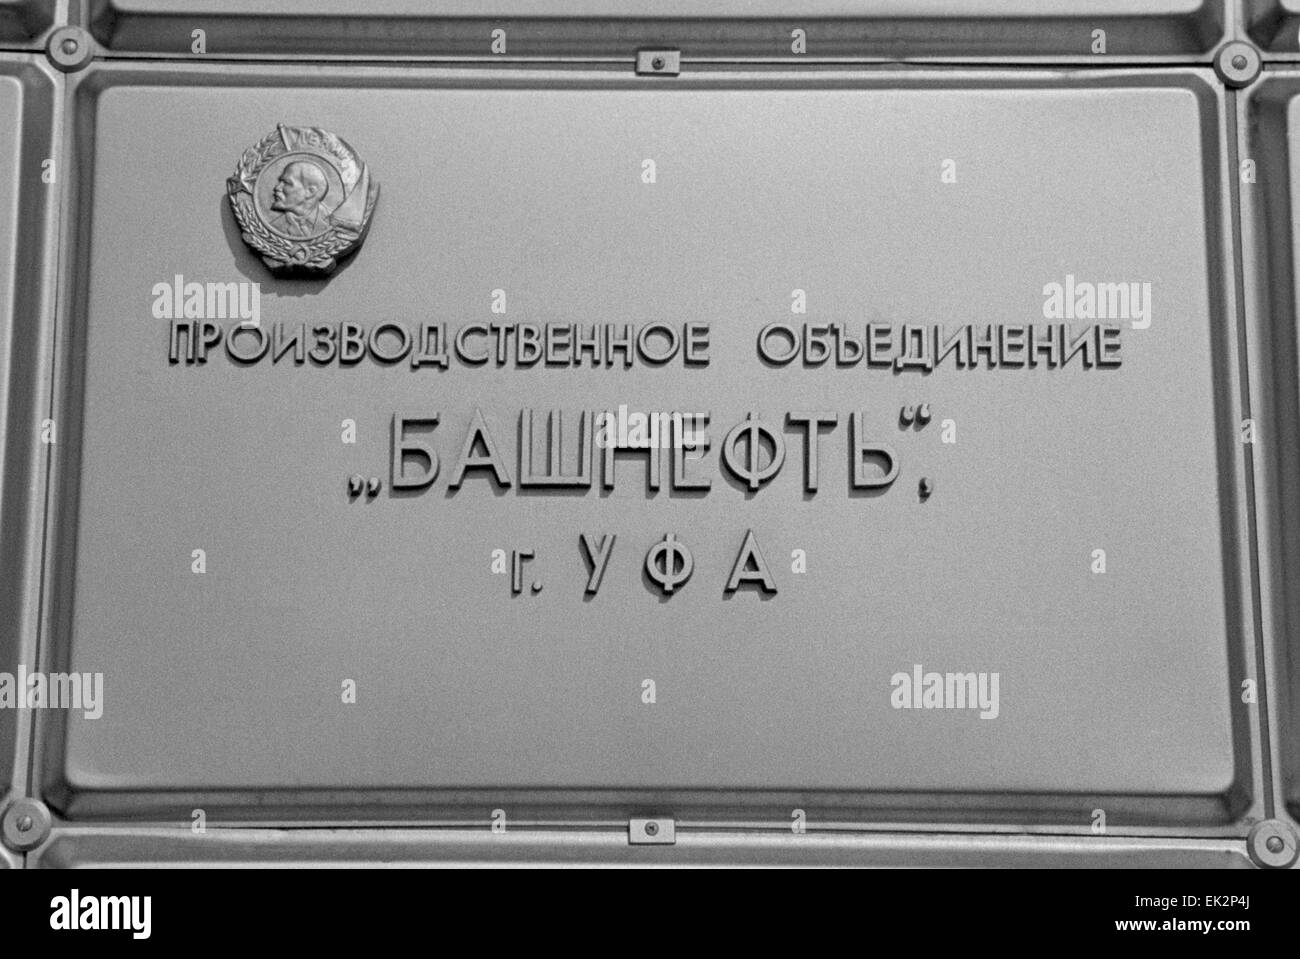 Moscow. VDNKH All-Russia Exhibition Centre. A board with the inscription 'Bashneft production enterprise' - Stock Image